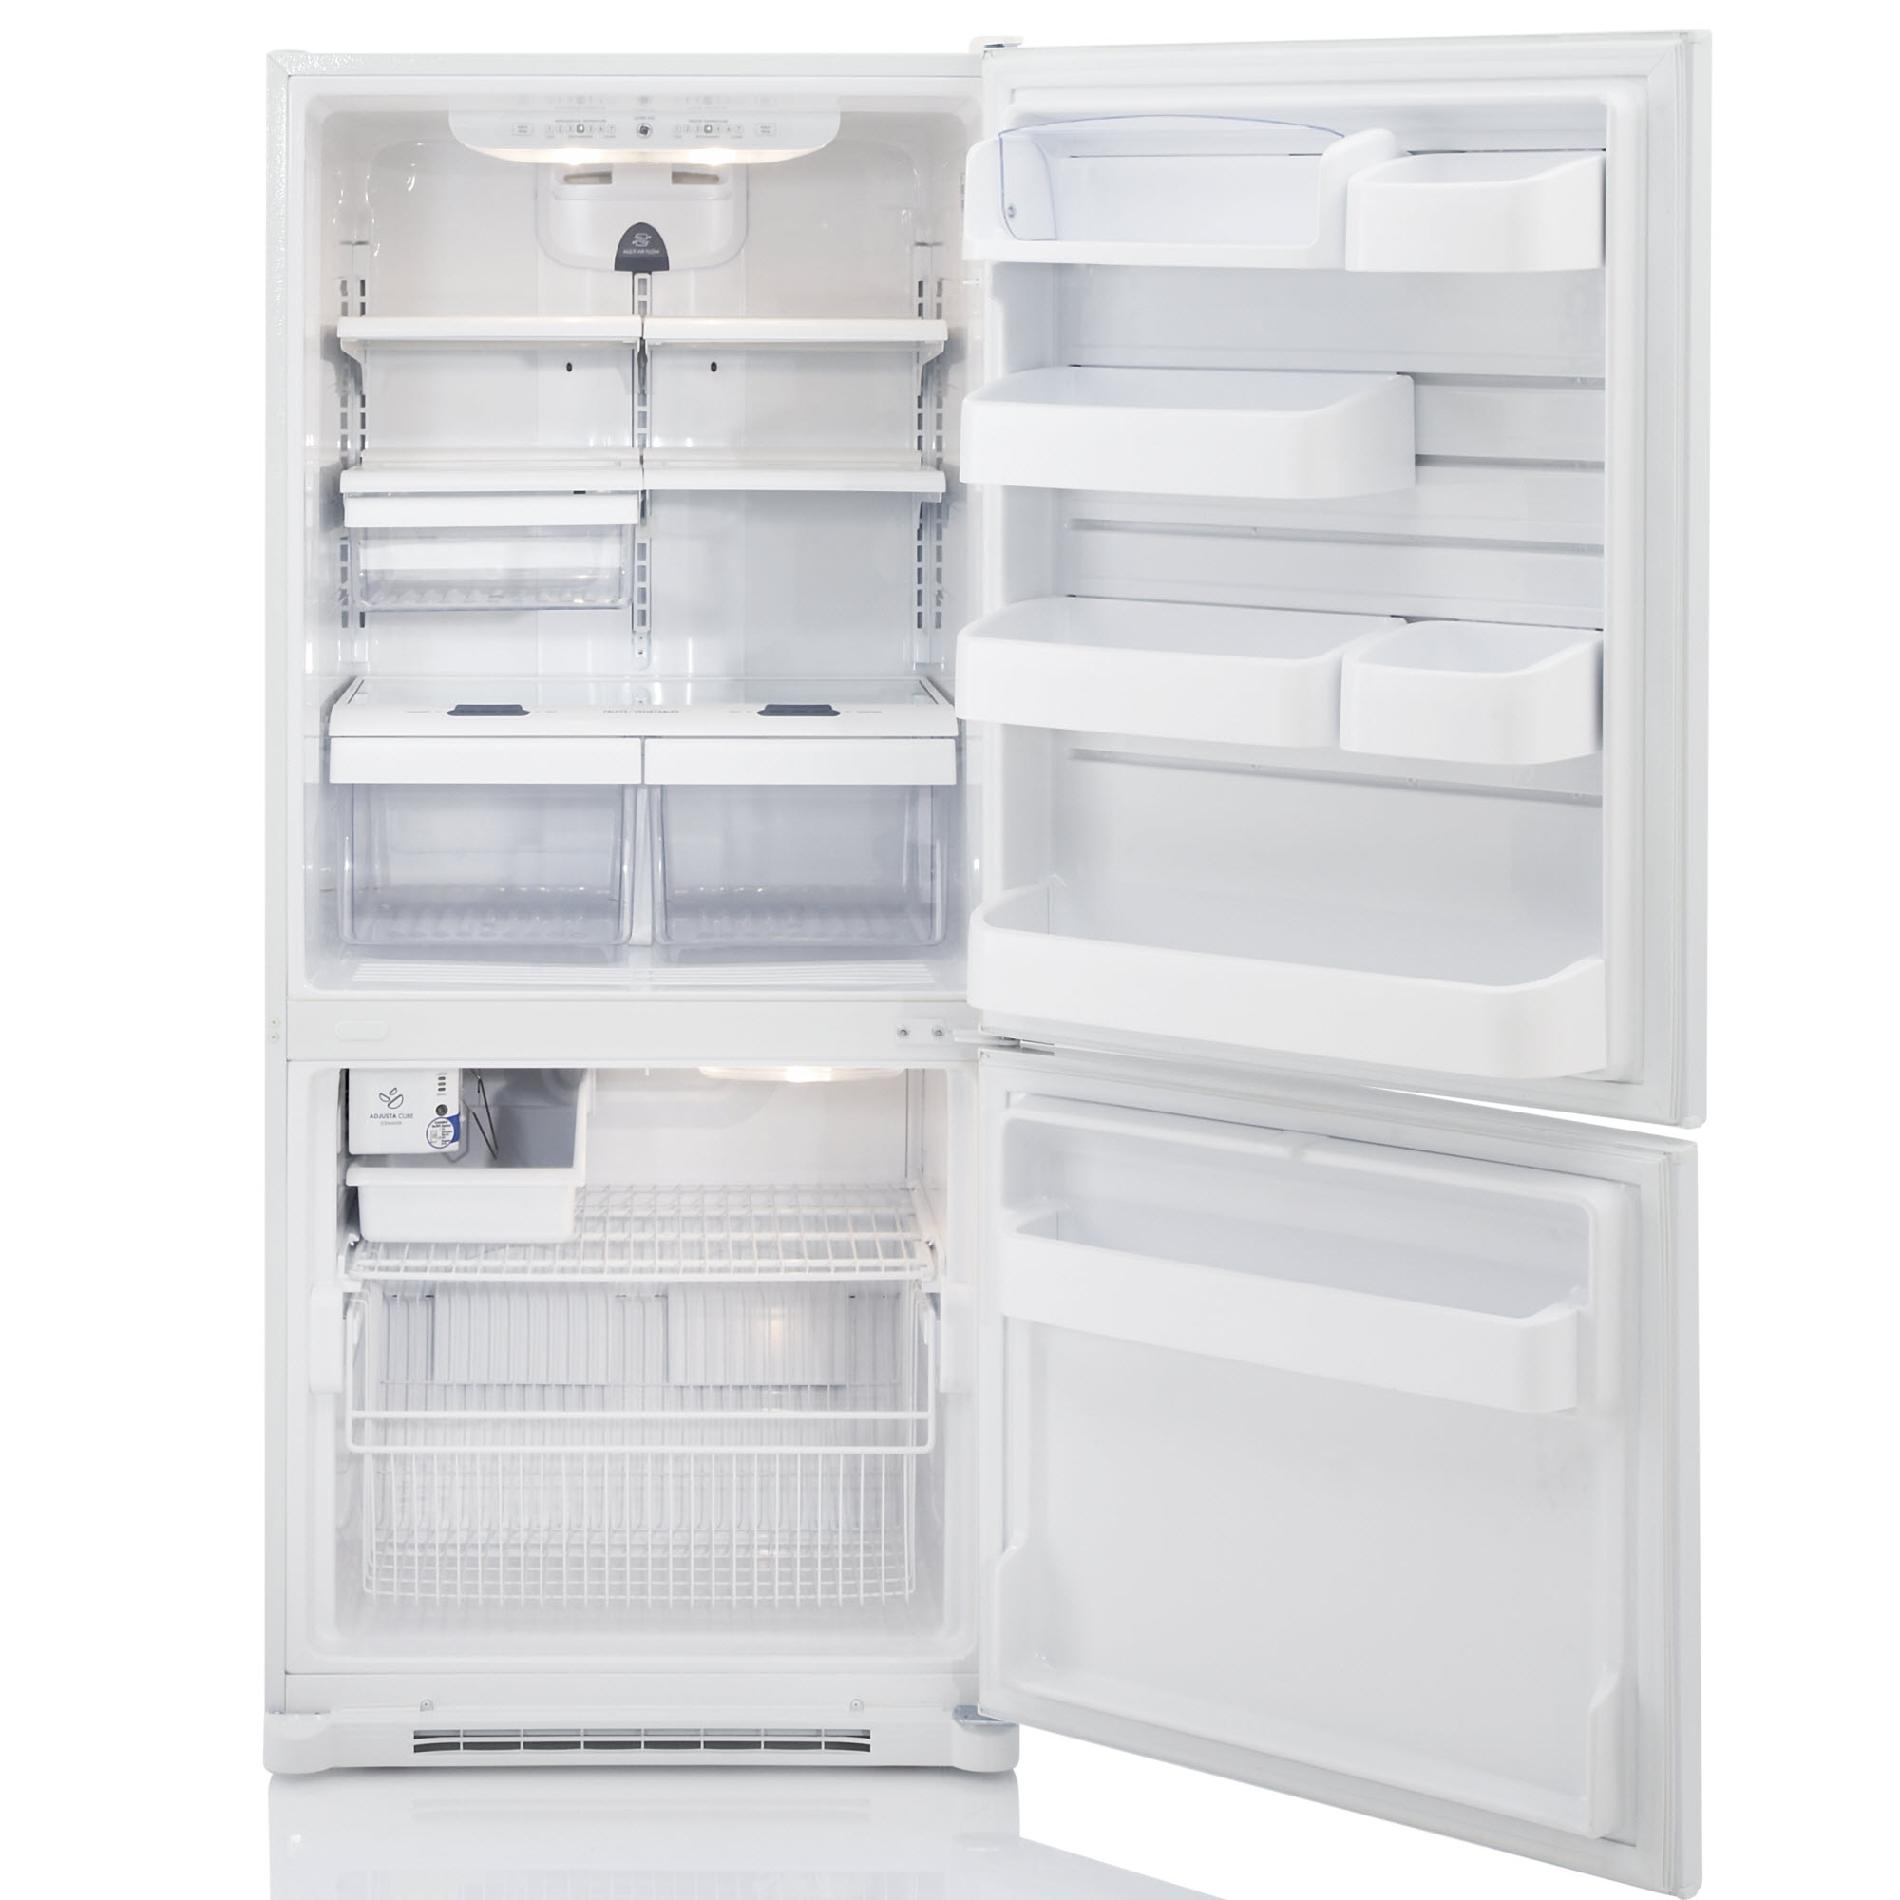 Kenmore 19.7 cu. ft. Bottom Freezer Refrigerator - White